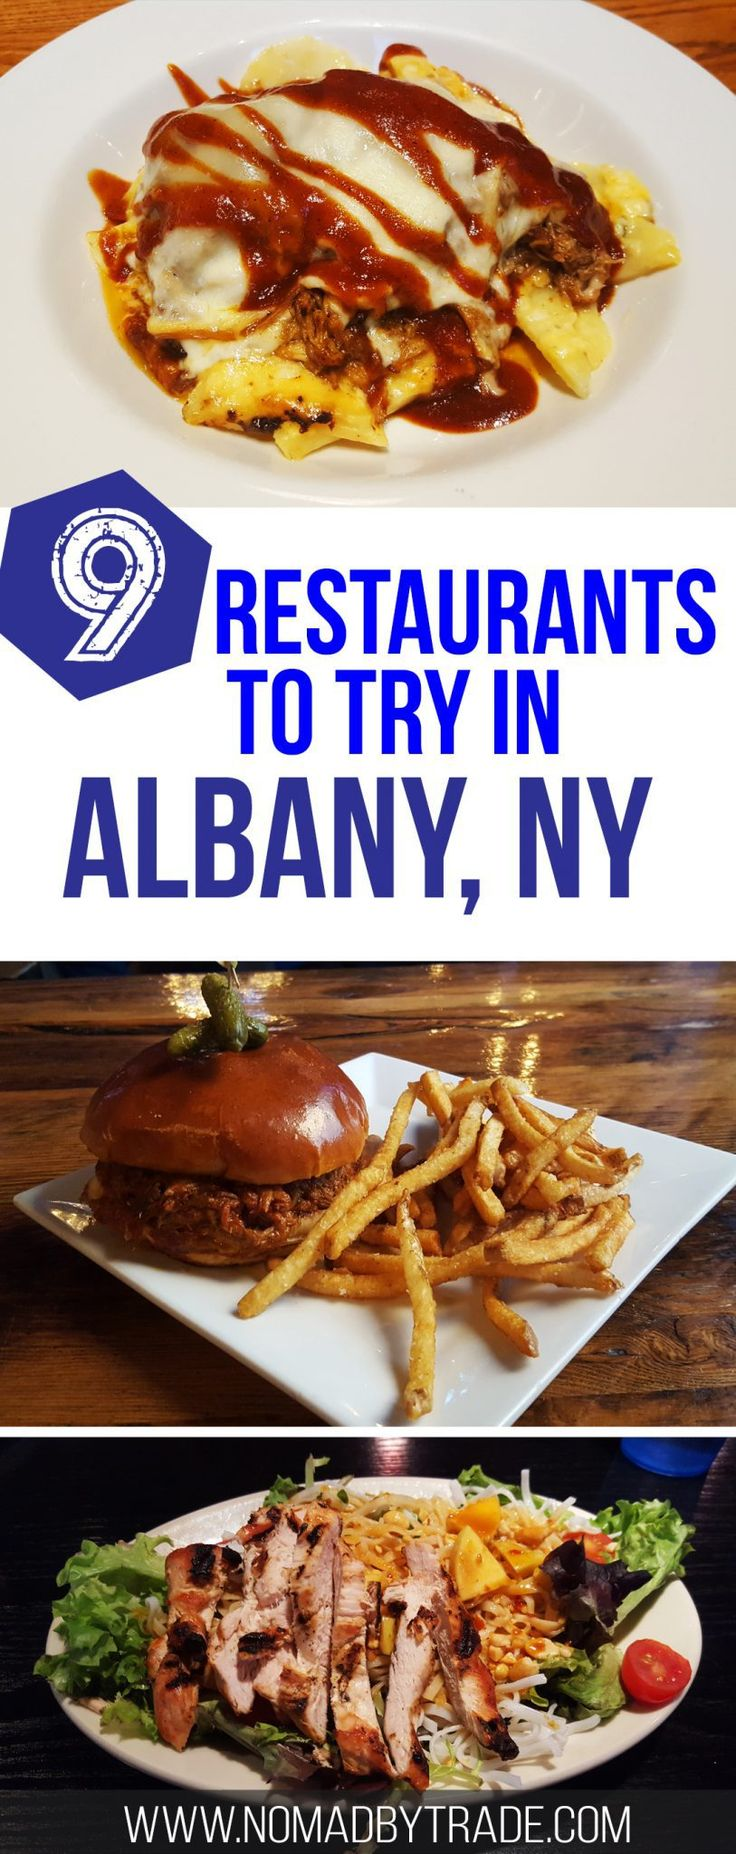 From BBQ to beer halls, Albany, New York has some great restaurants. Check out the Albany dining guide for the best places to eat. #Albany   #NewYork   #Restaurants   #AlbanyFood